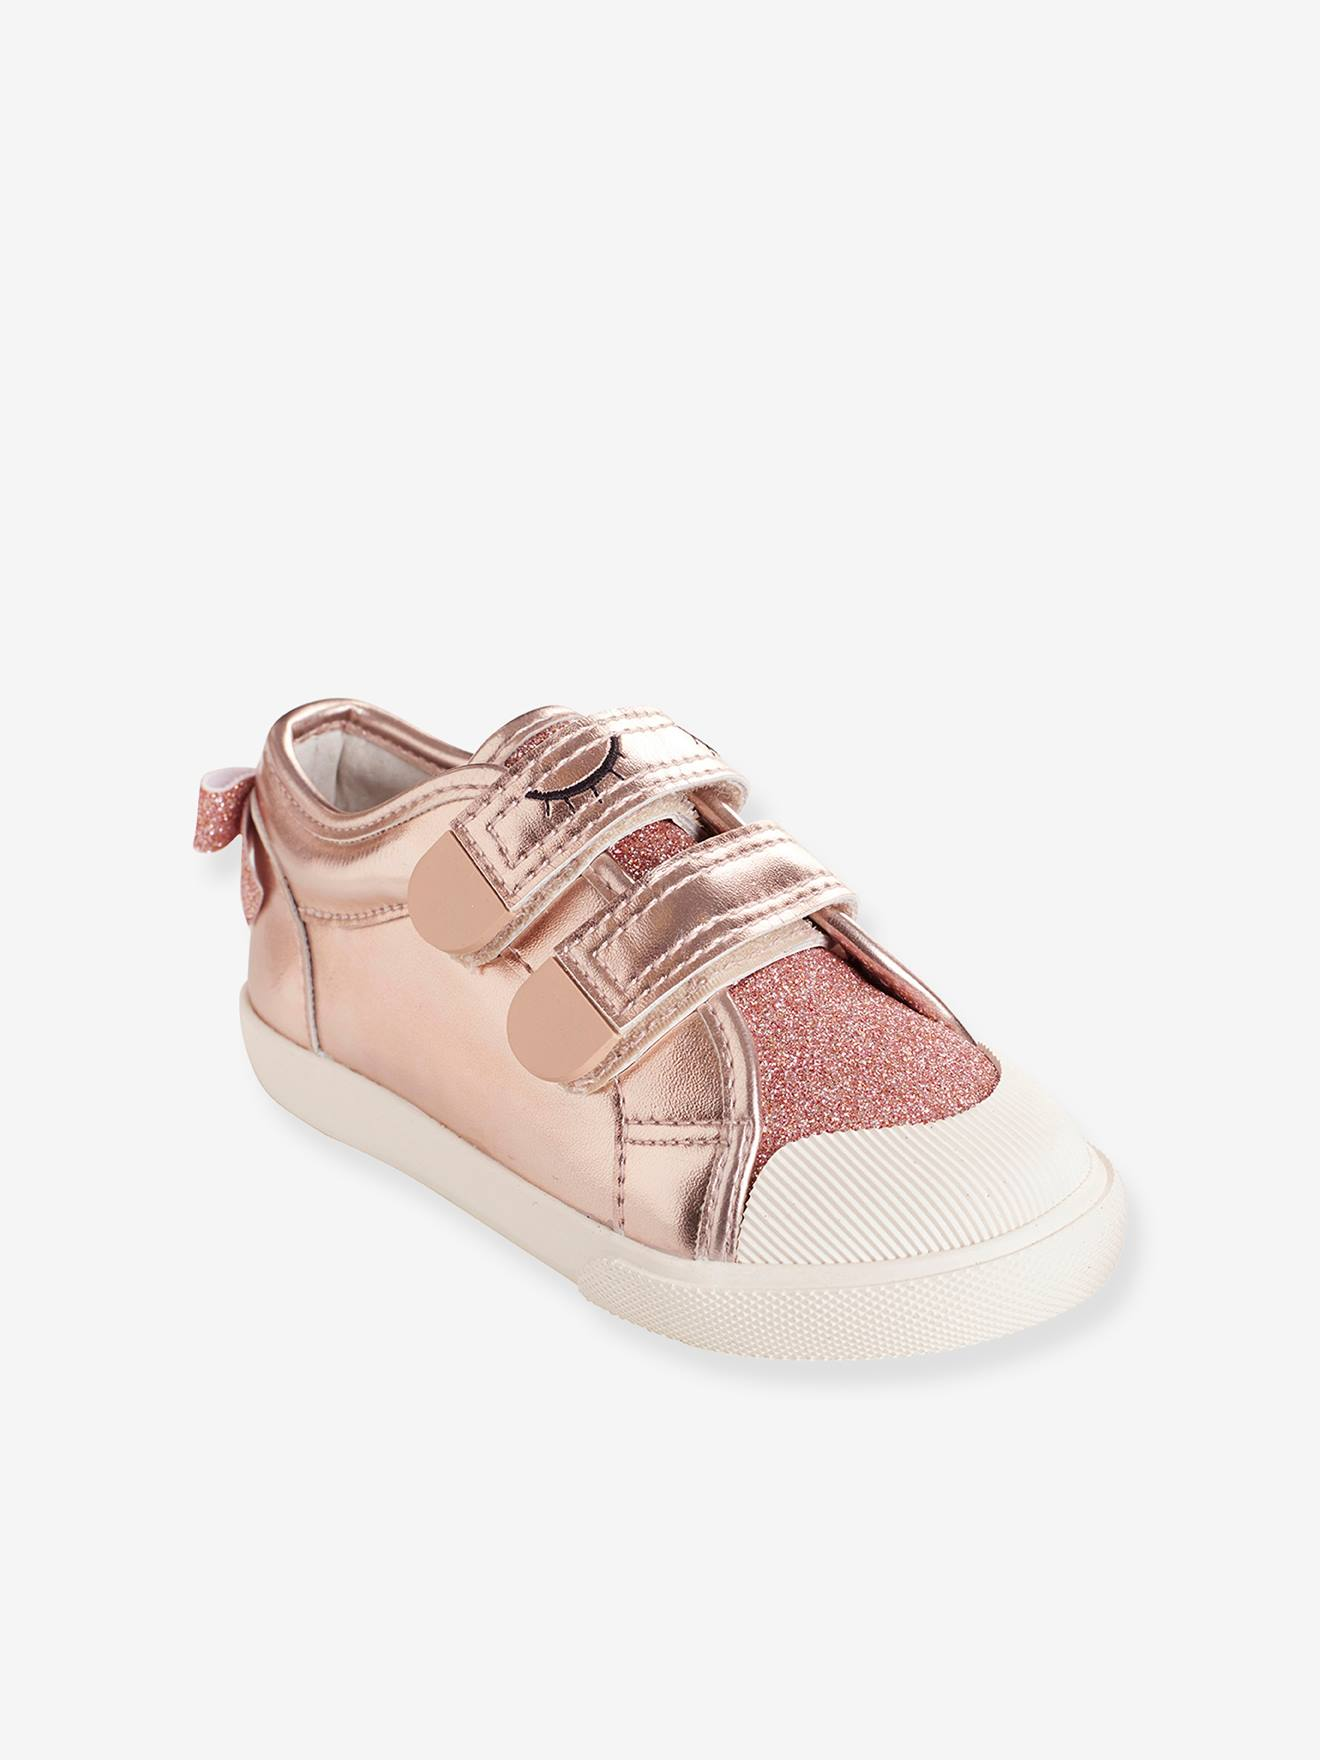 Chaussures,Chaussures fille 23,38,Baskets scratchées fille collection  maternelle